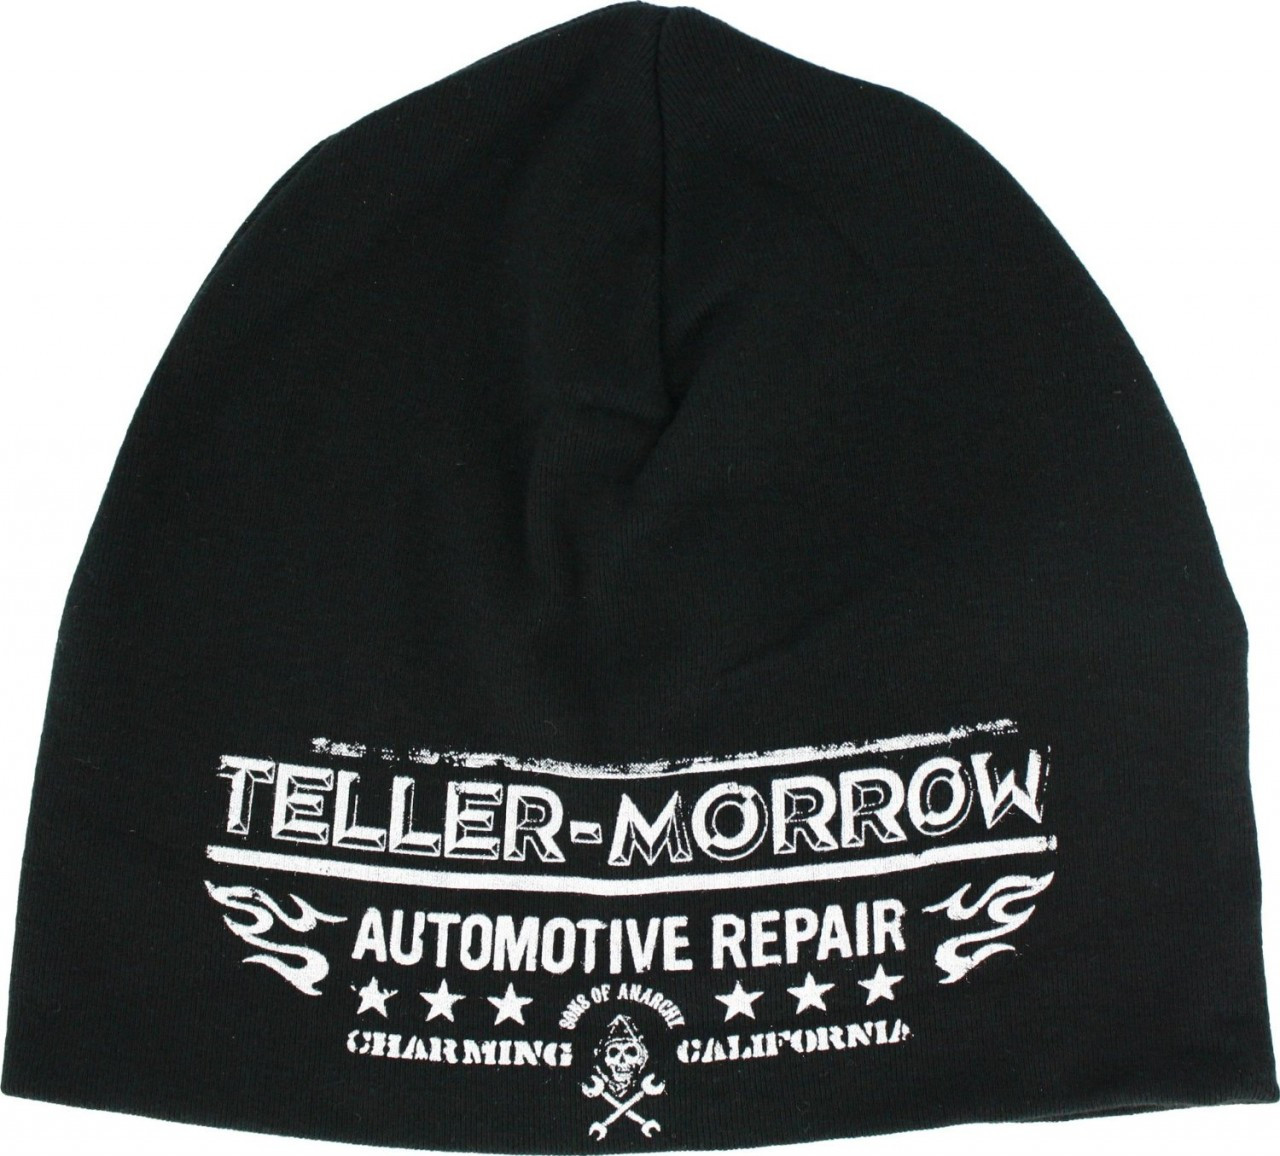 Sons of Anarchy Teller-Morrow beanie -SOA - Hollywood Filane 81ce4ee82c80